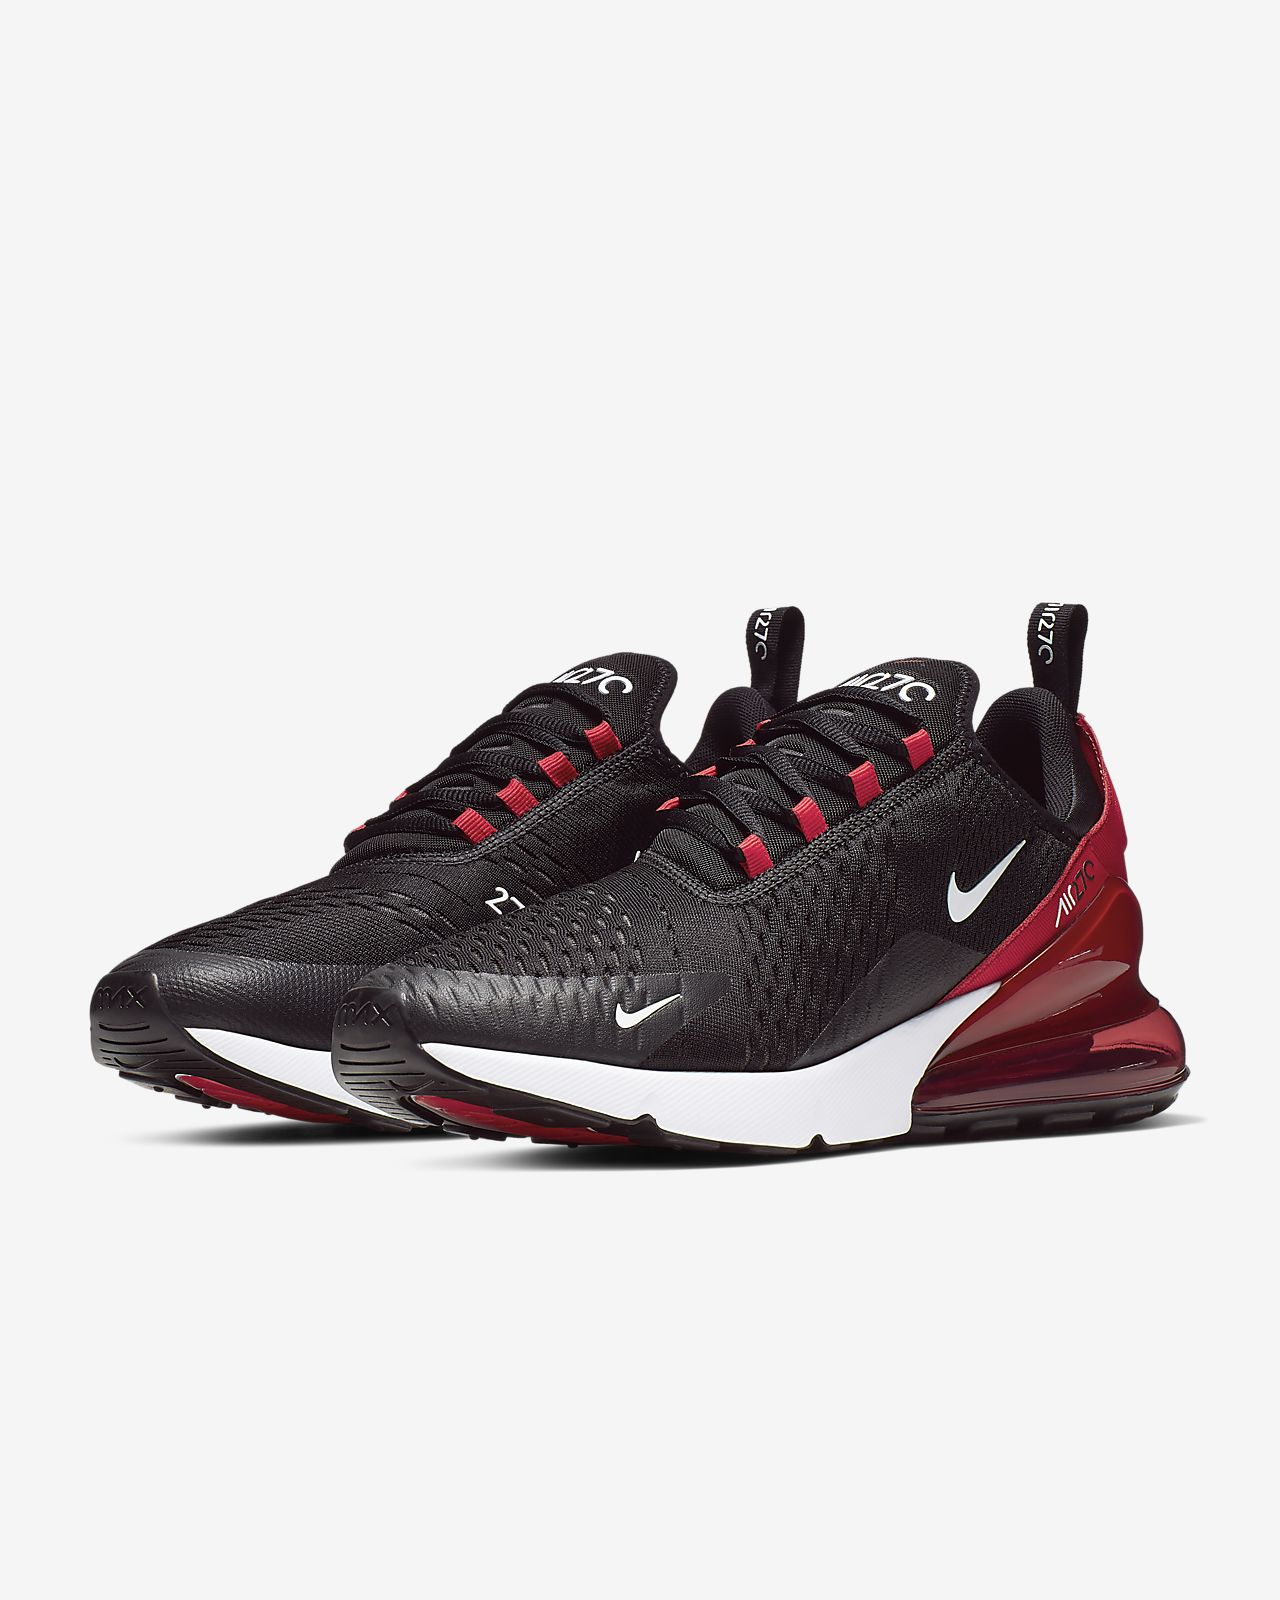 109412f8a5b28 Nike Air Max 270 Men s Shoe. Nike.com GB